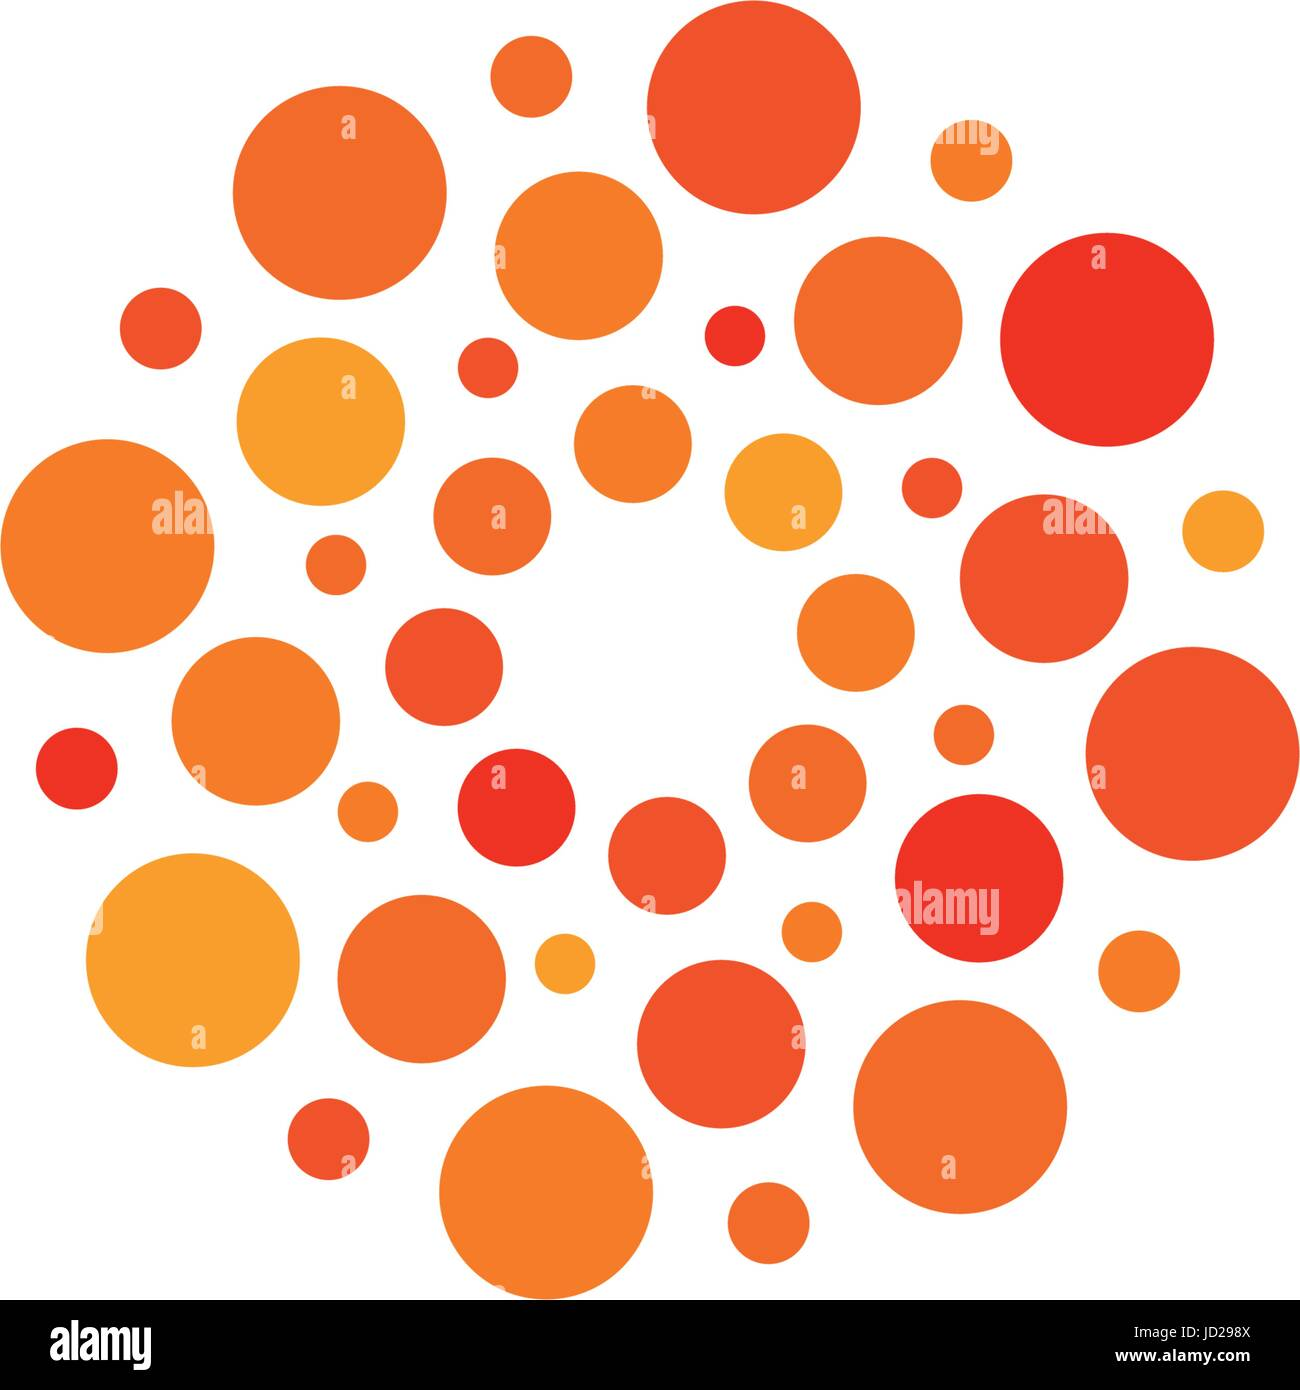 Isolated Abstract Round Shape Orange And Red Color Logo